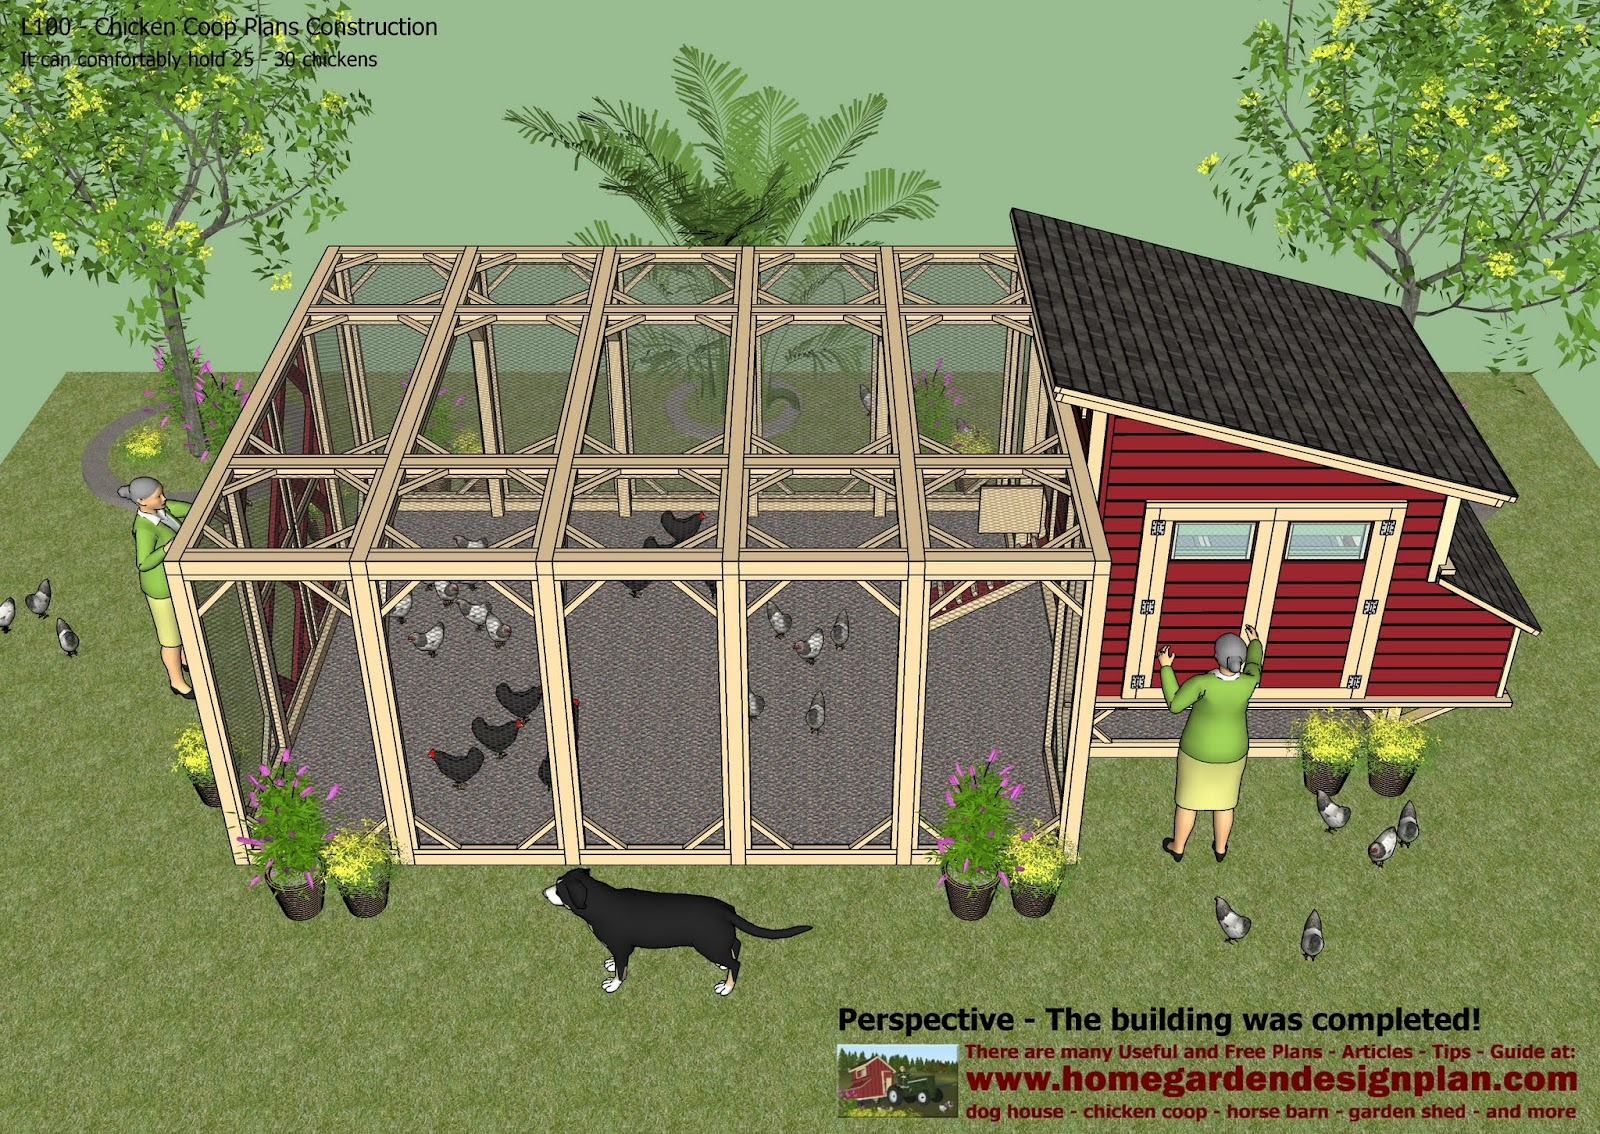 Home garden plans l100 chicken coop plans construction for How to build a chicken hutch